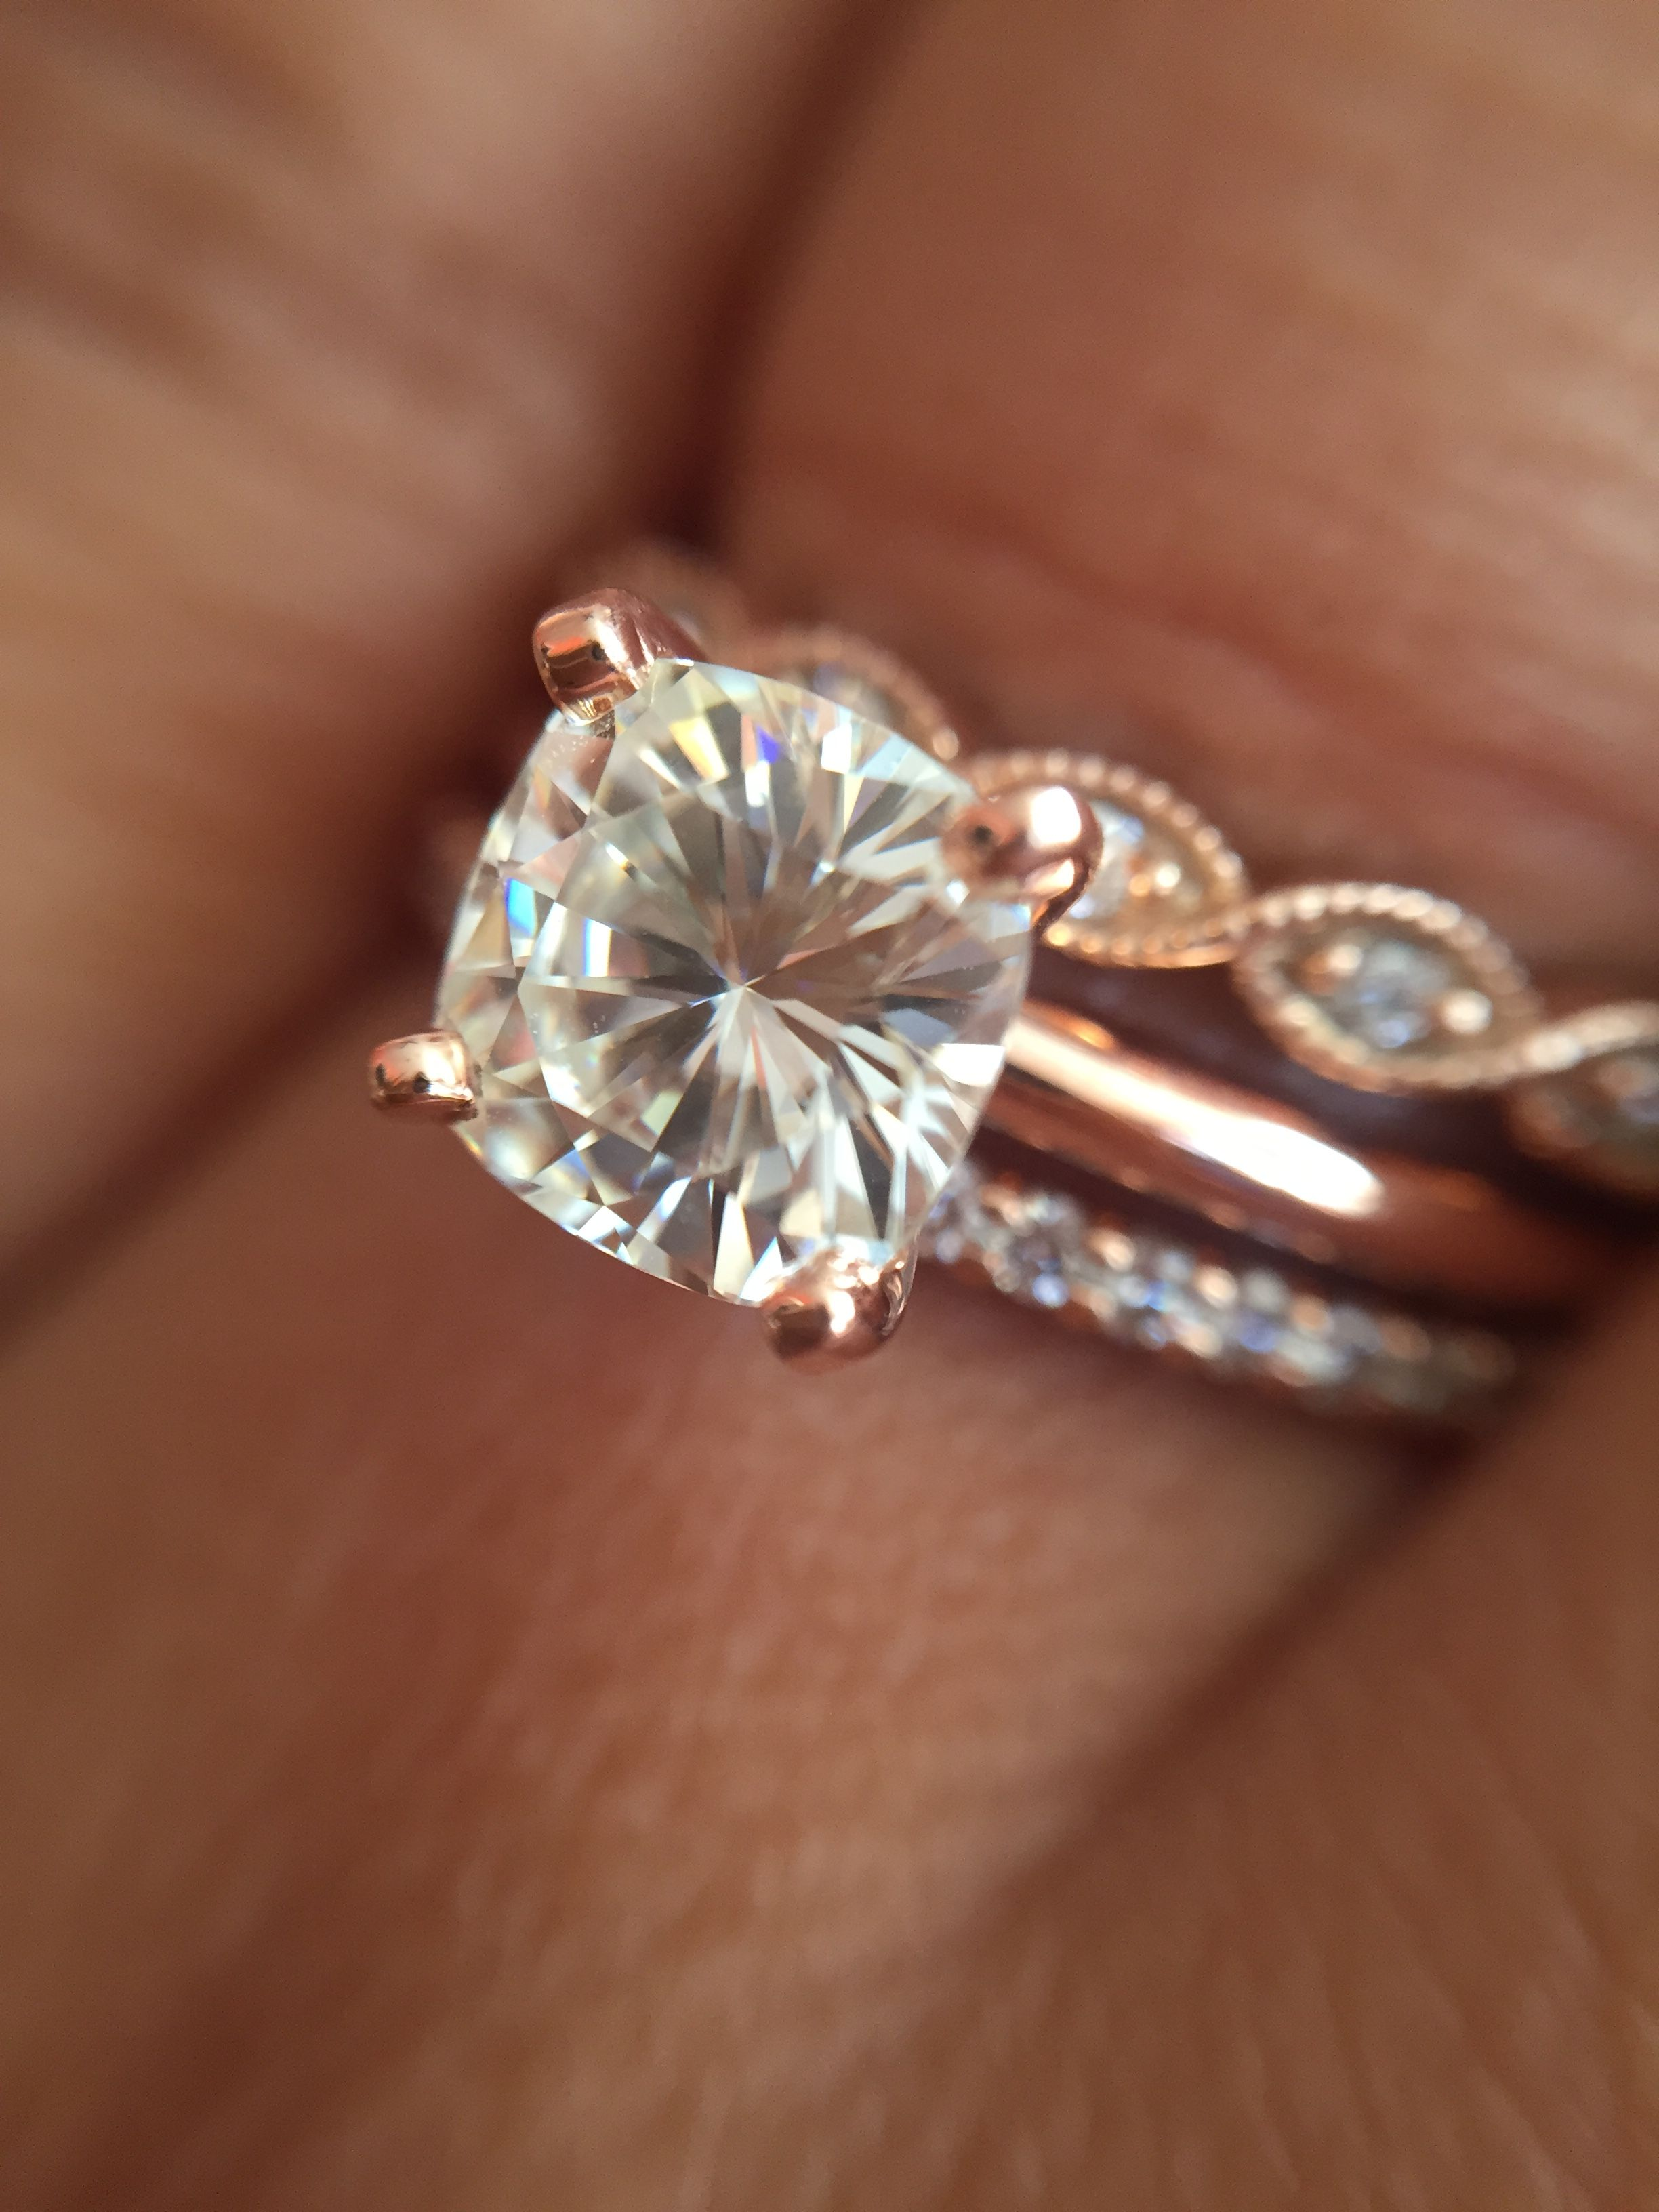 Can I See Your Rose Gold Solitaire Rings Weddingbee Rose Gold Solitaire Ring Wedding Rings Engagement Rose Engagement Ring